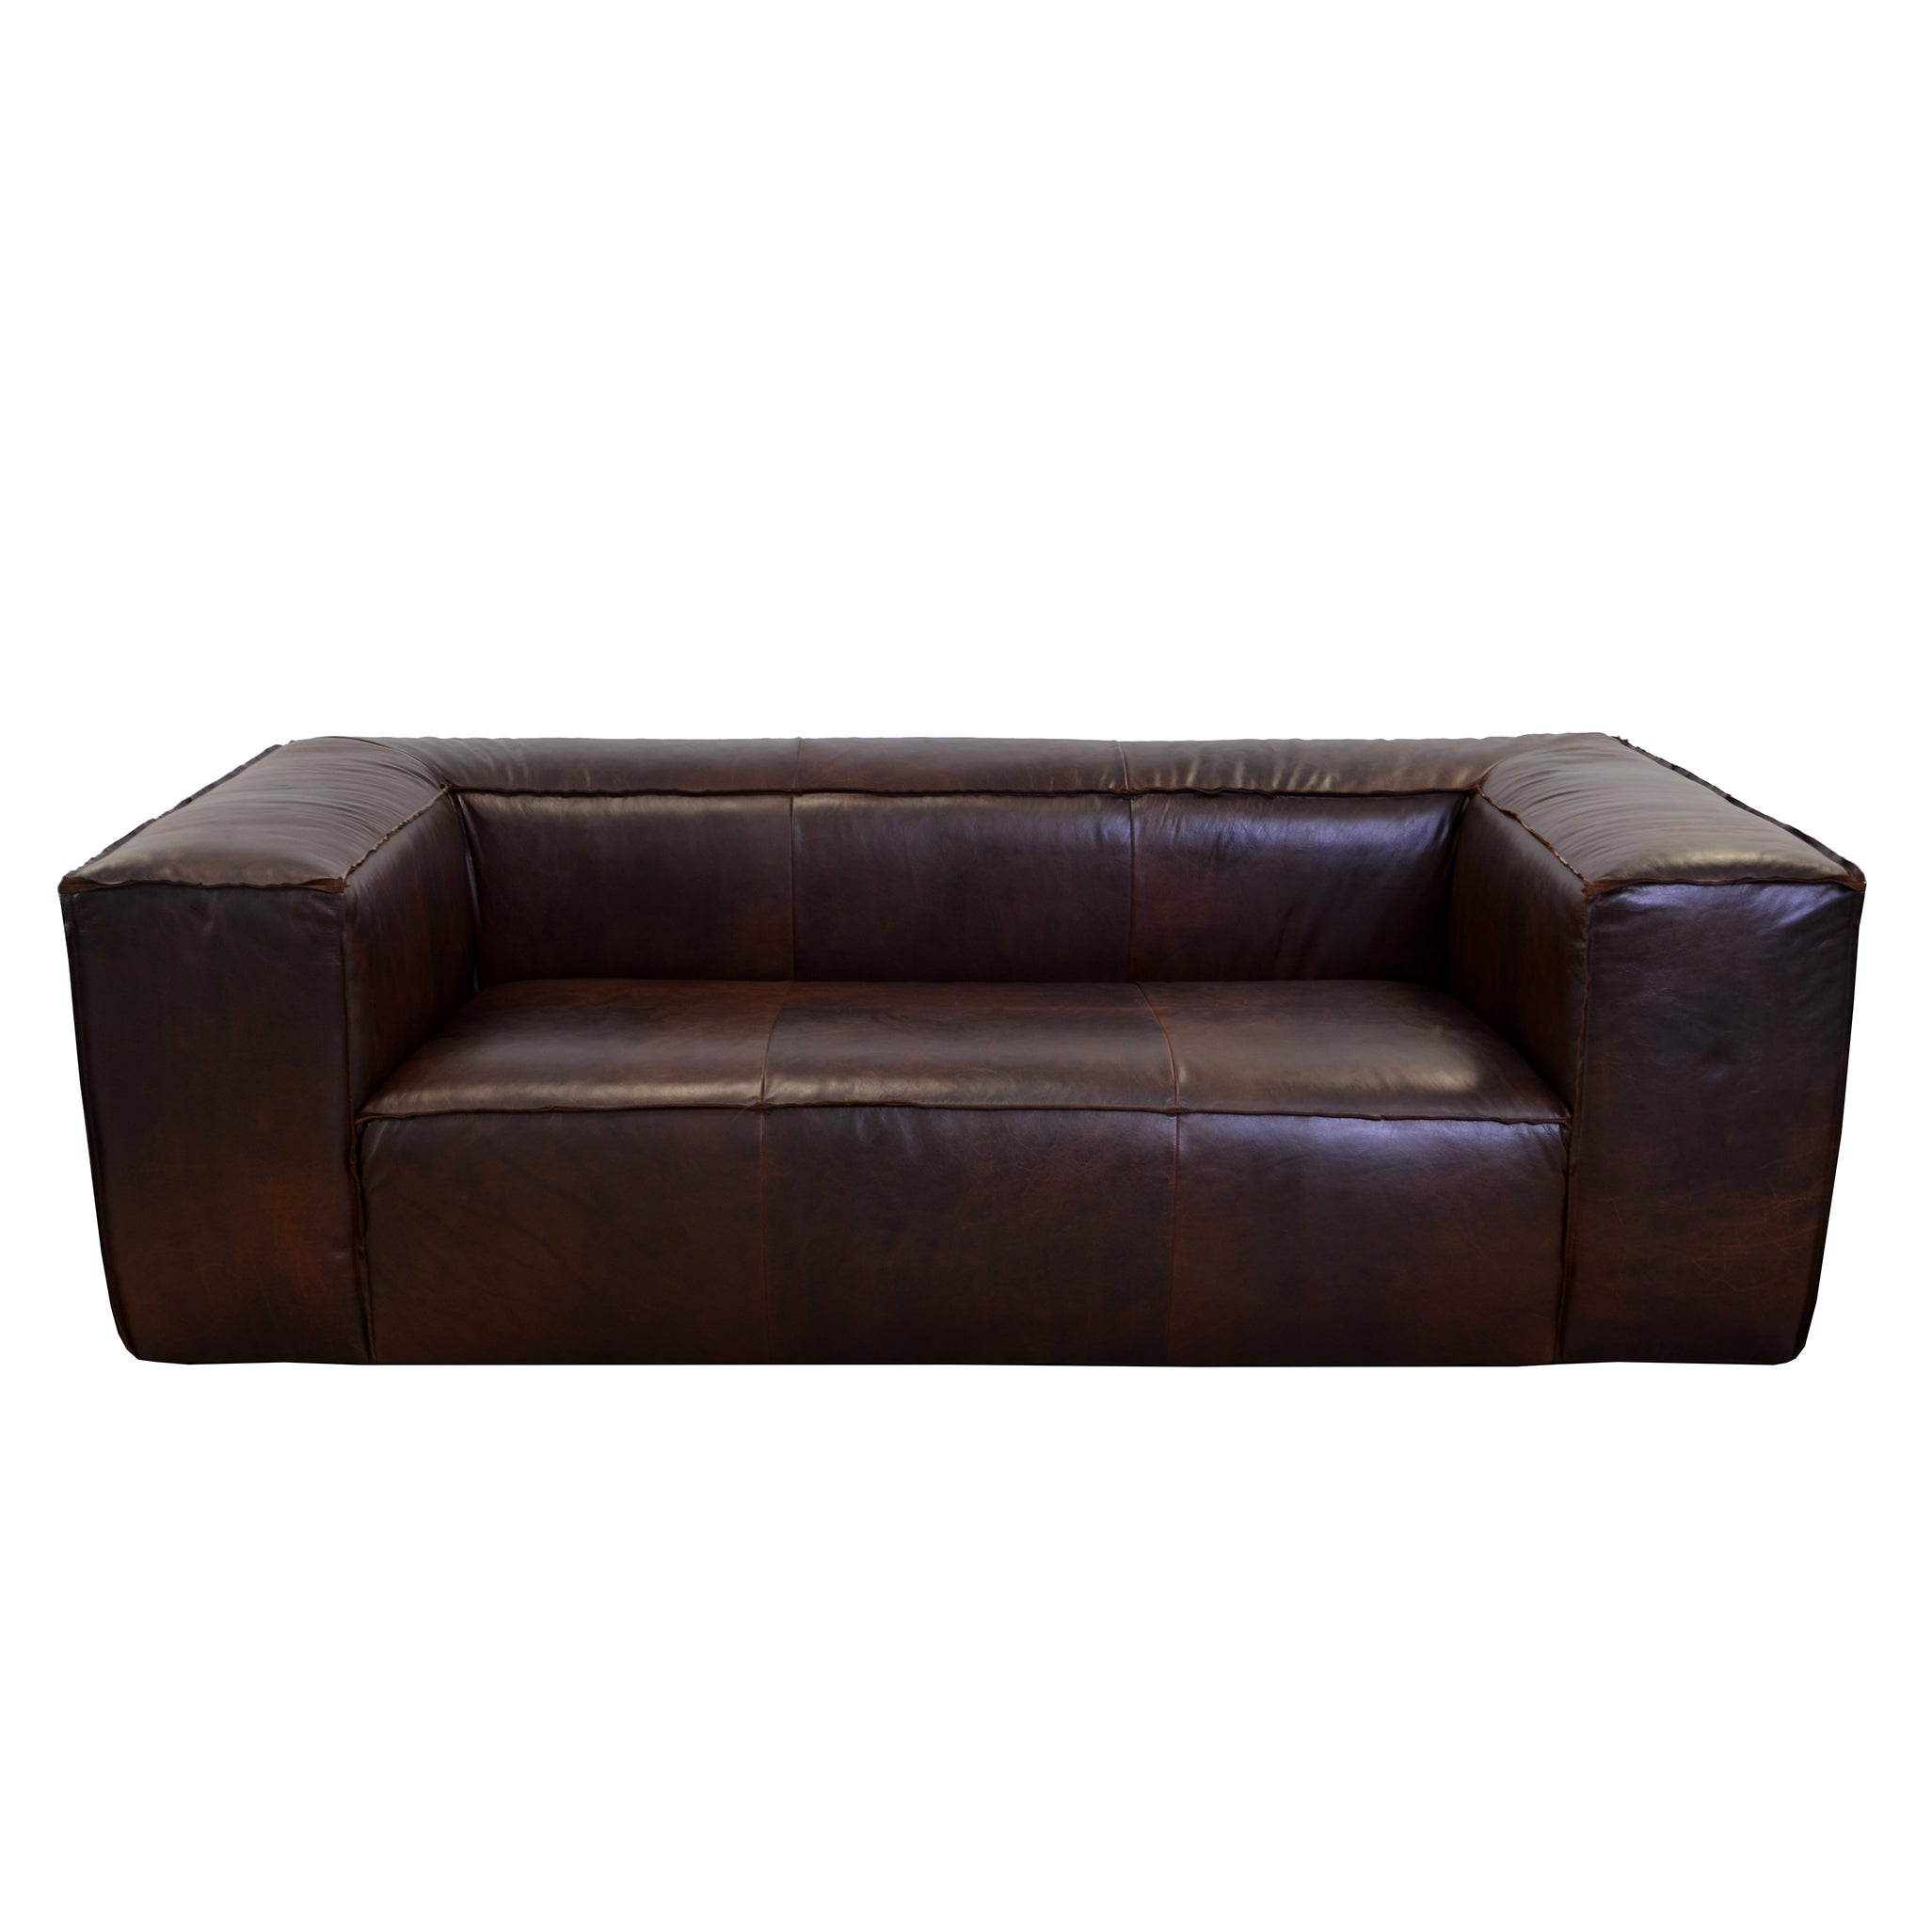 Shop Made To Order Lawton Genuine Top Grain Leather Sofa   On Sale   Free  Shipping Today   Overstock.com   14221261